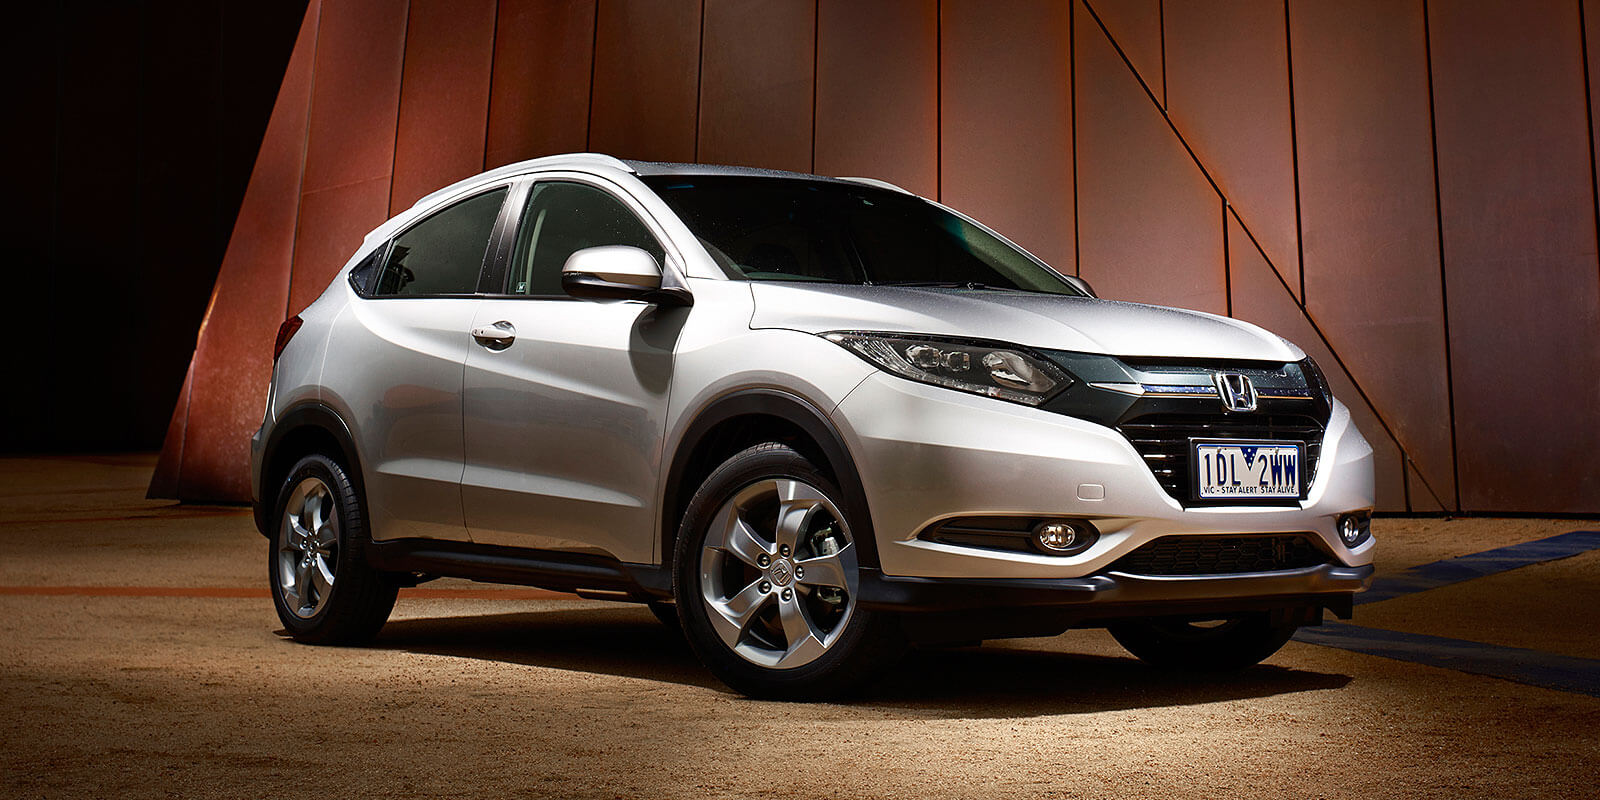 Downturn: Honda's HR-V might be a star performer on the sales charts, but JD Power's CSI study raises a question mark over how well its owners are being treated when they return for servicing.